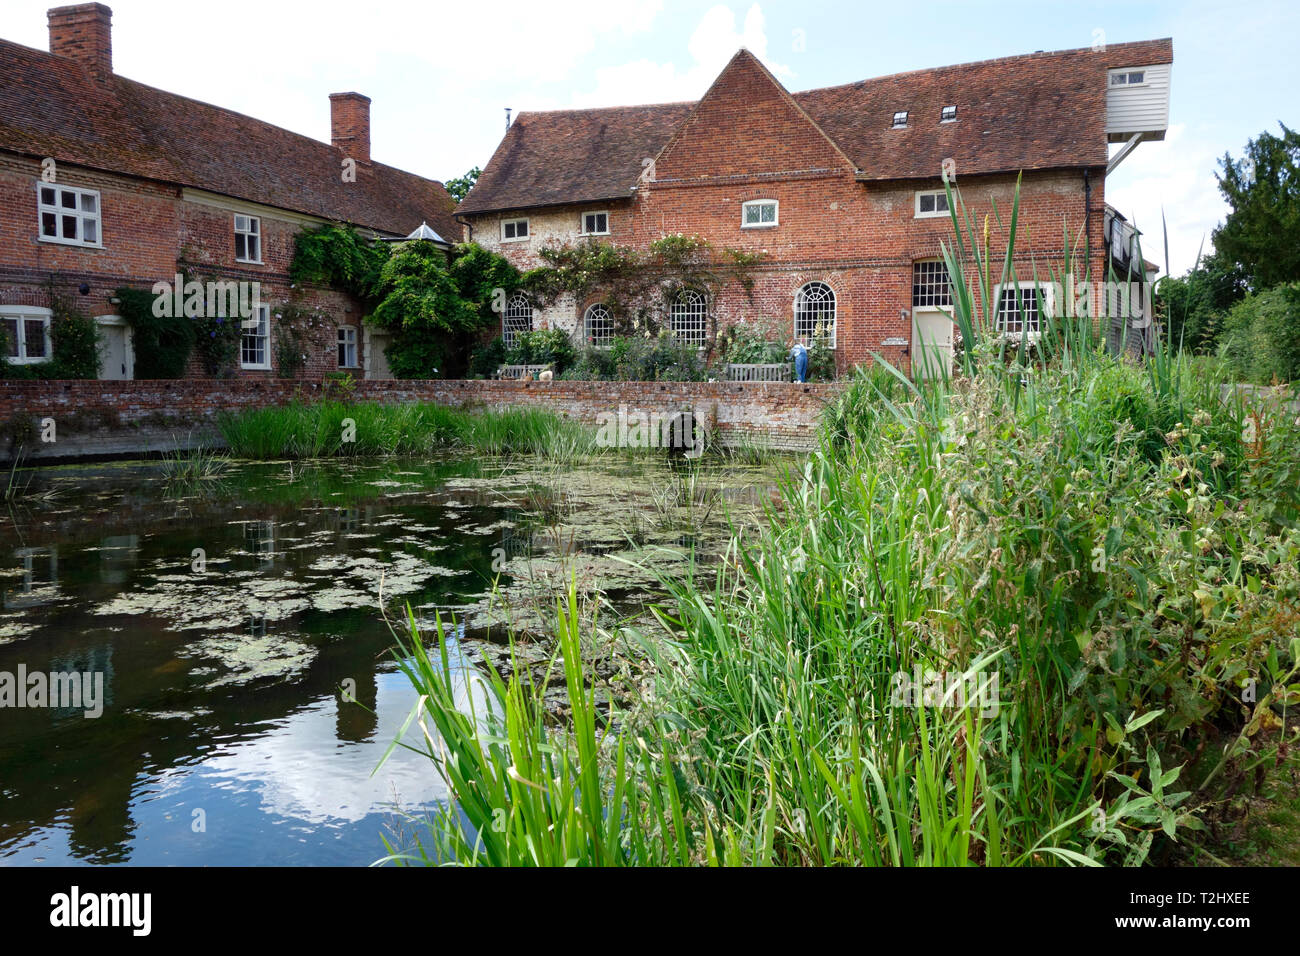 Flatford Mill on the River Stour - Stock Image